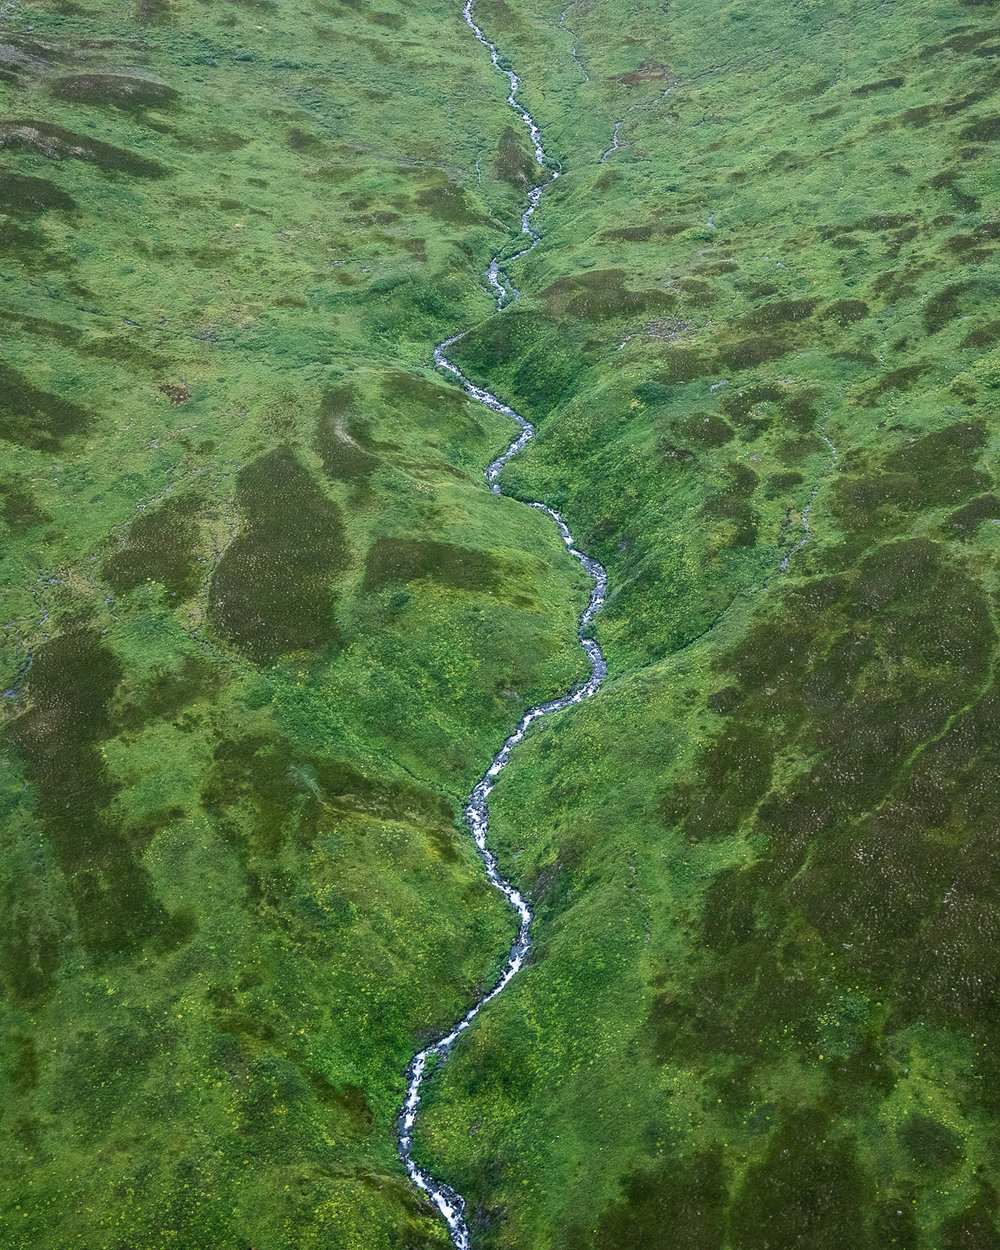 Glacial stream in the highlands.